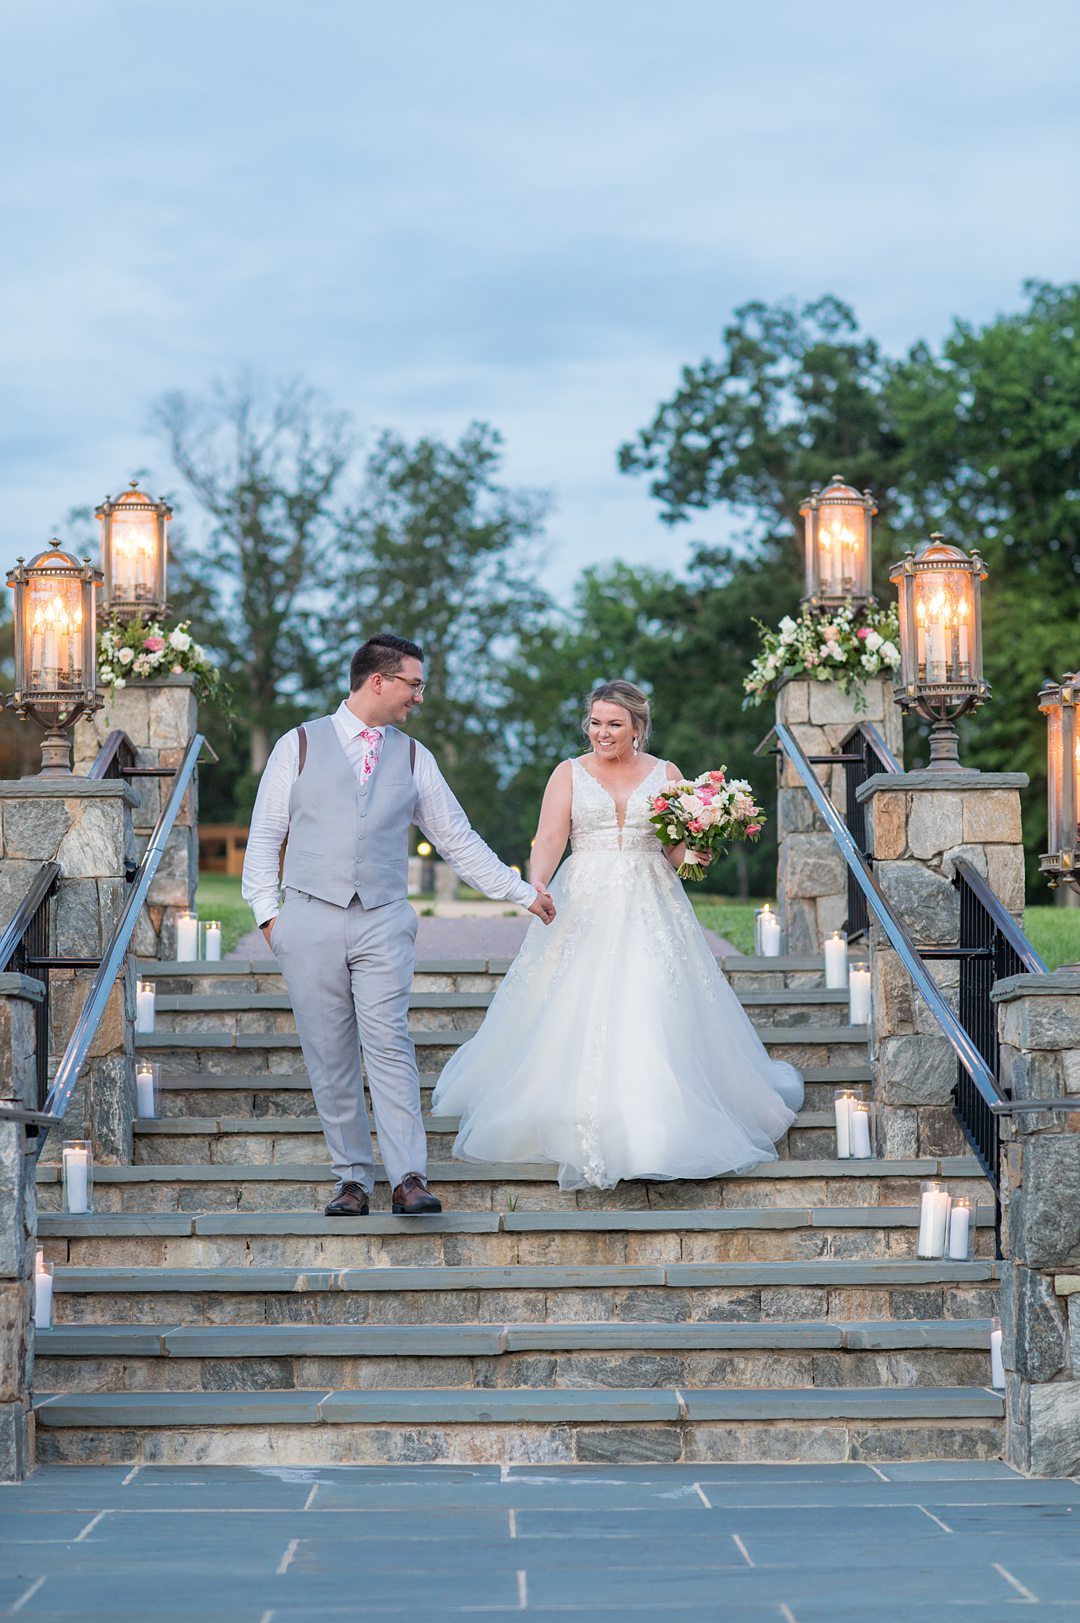 Dusk photo on the stairs of tThe Lodge at Mount Ida farm with the bride and groom surrounded by candlelight by Mikkel Paige Photography. Planning by Mary Elizabeth Events. #charlottesvillewedding #mikkelpaige #duskphotos #brideandgroom